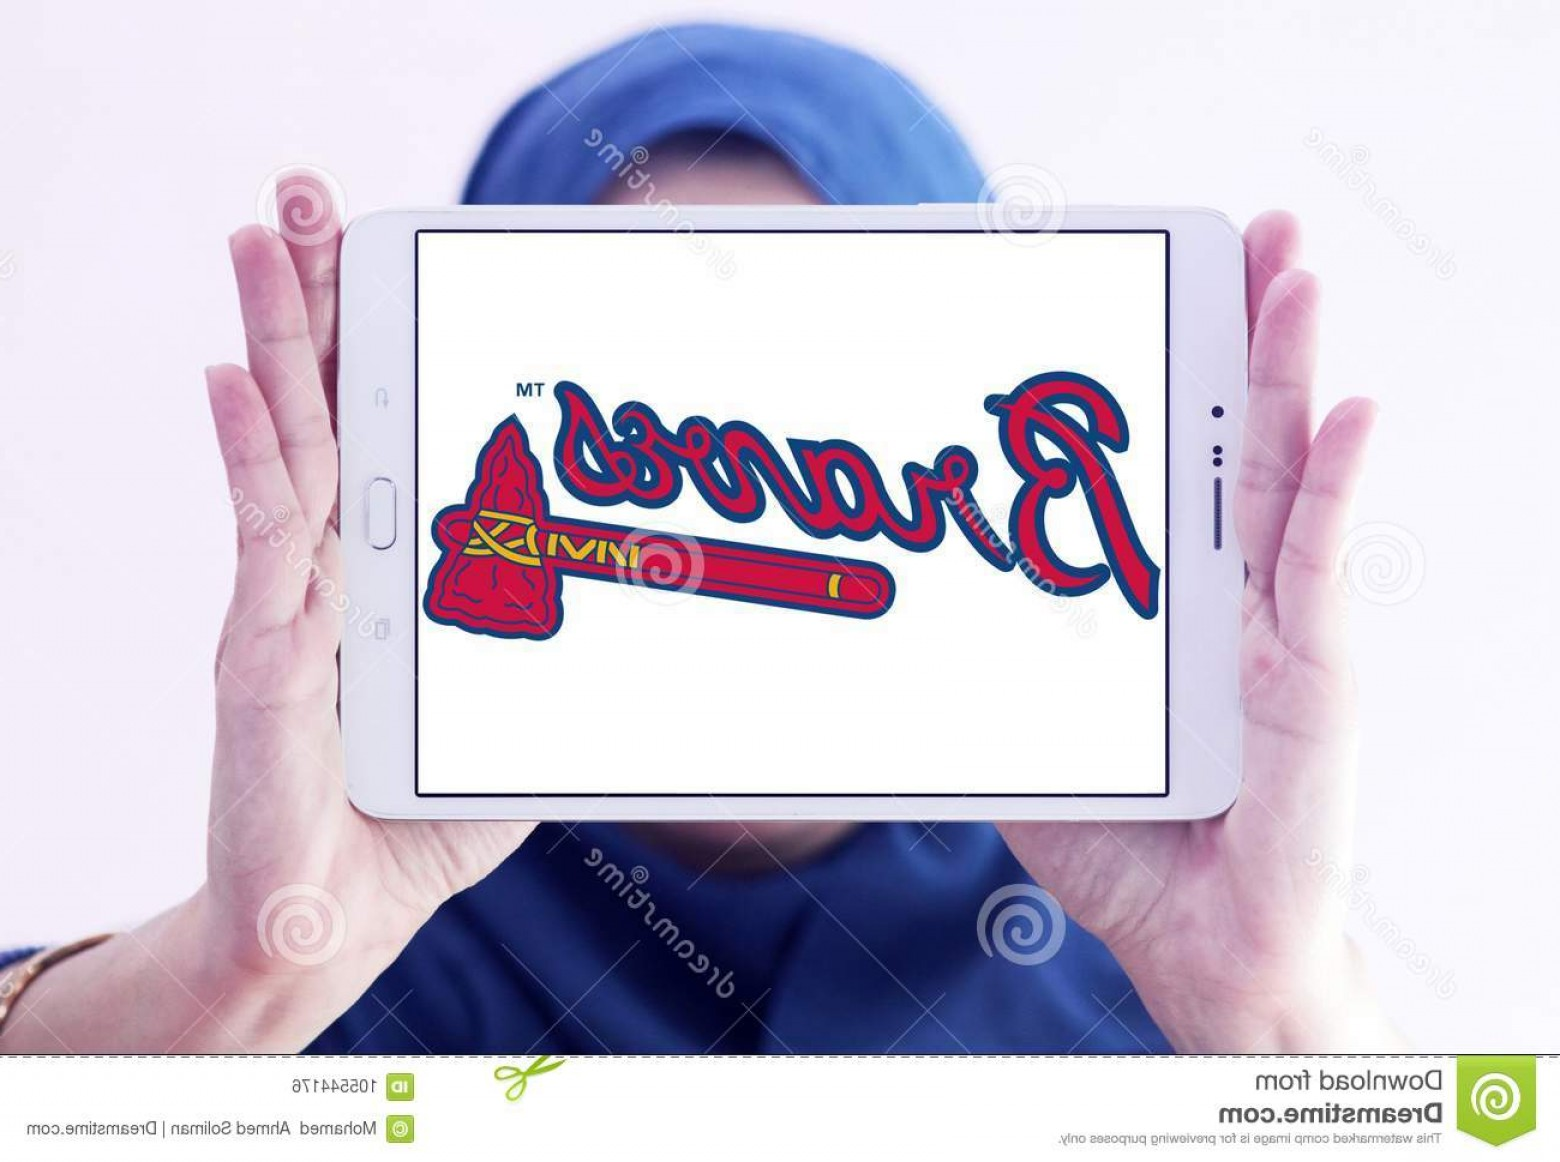 Braves Logo Vector: Atlanta Braves Baseball Team Logo Logo Atlanta Braves Baseball Team Samsung Tablet Holded Arab Muslim Woman Atlanta Image